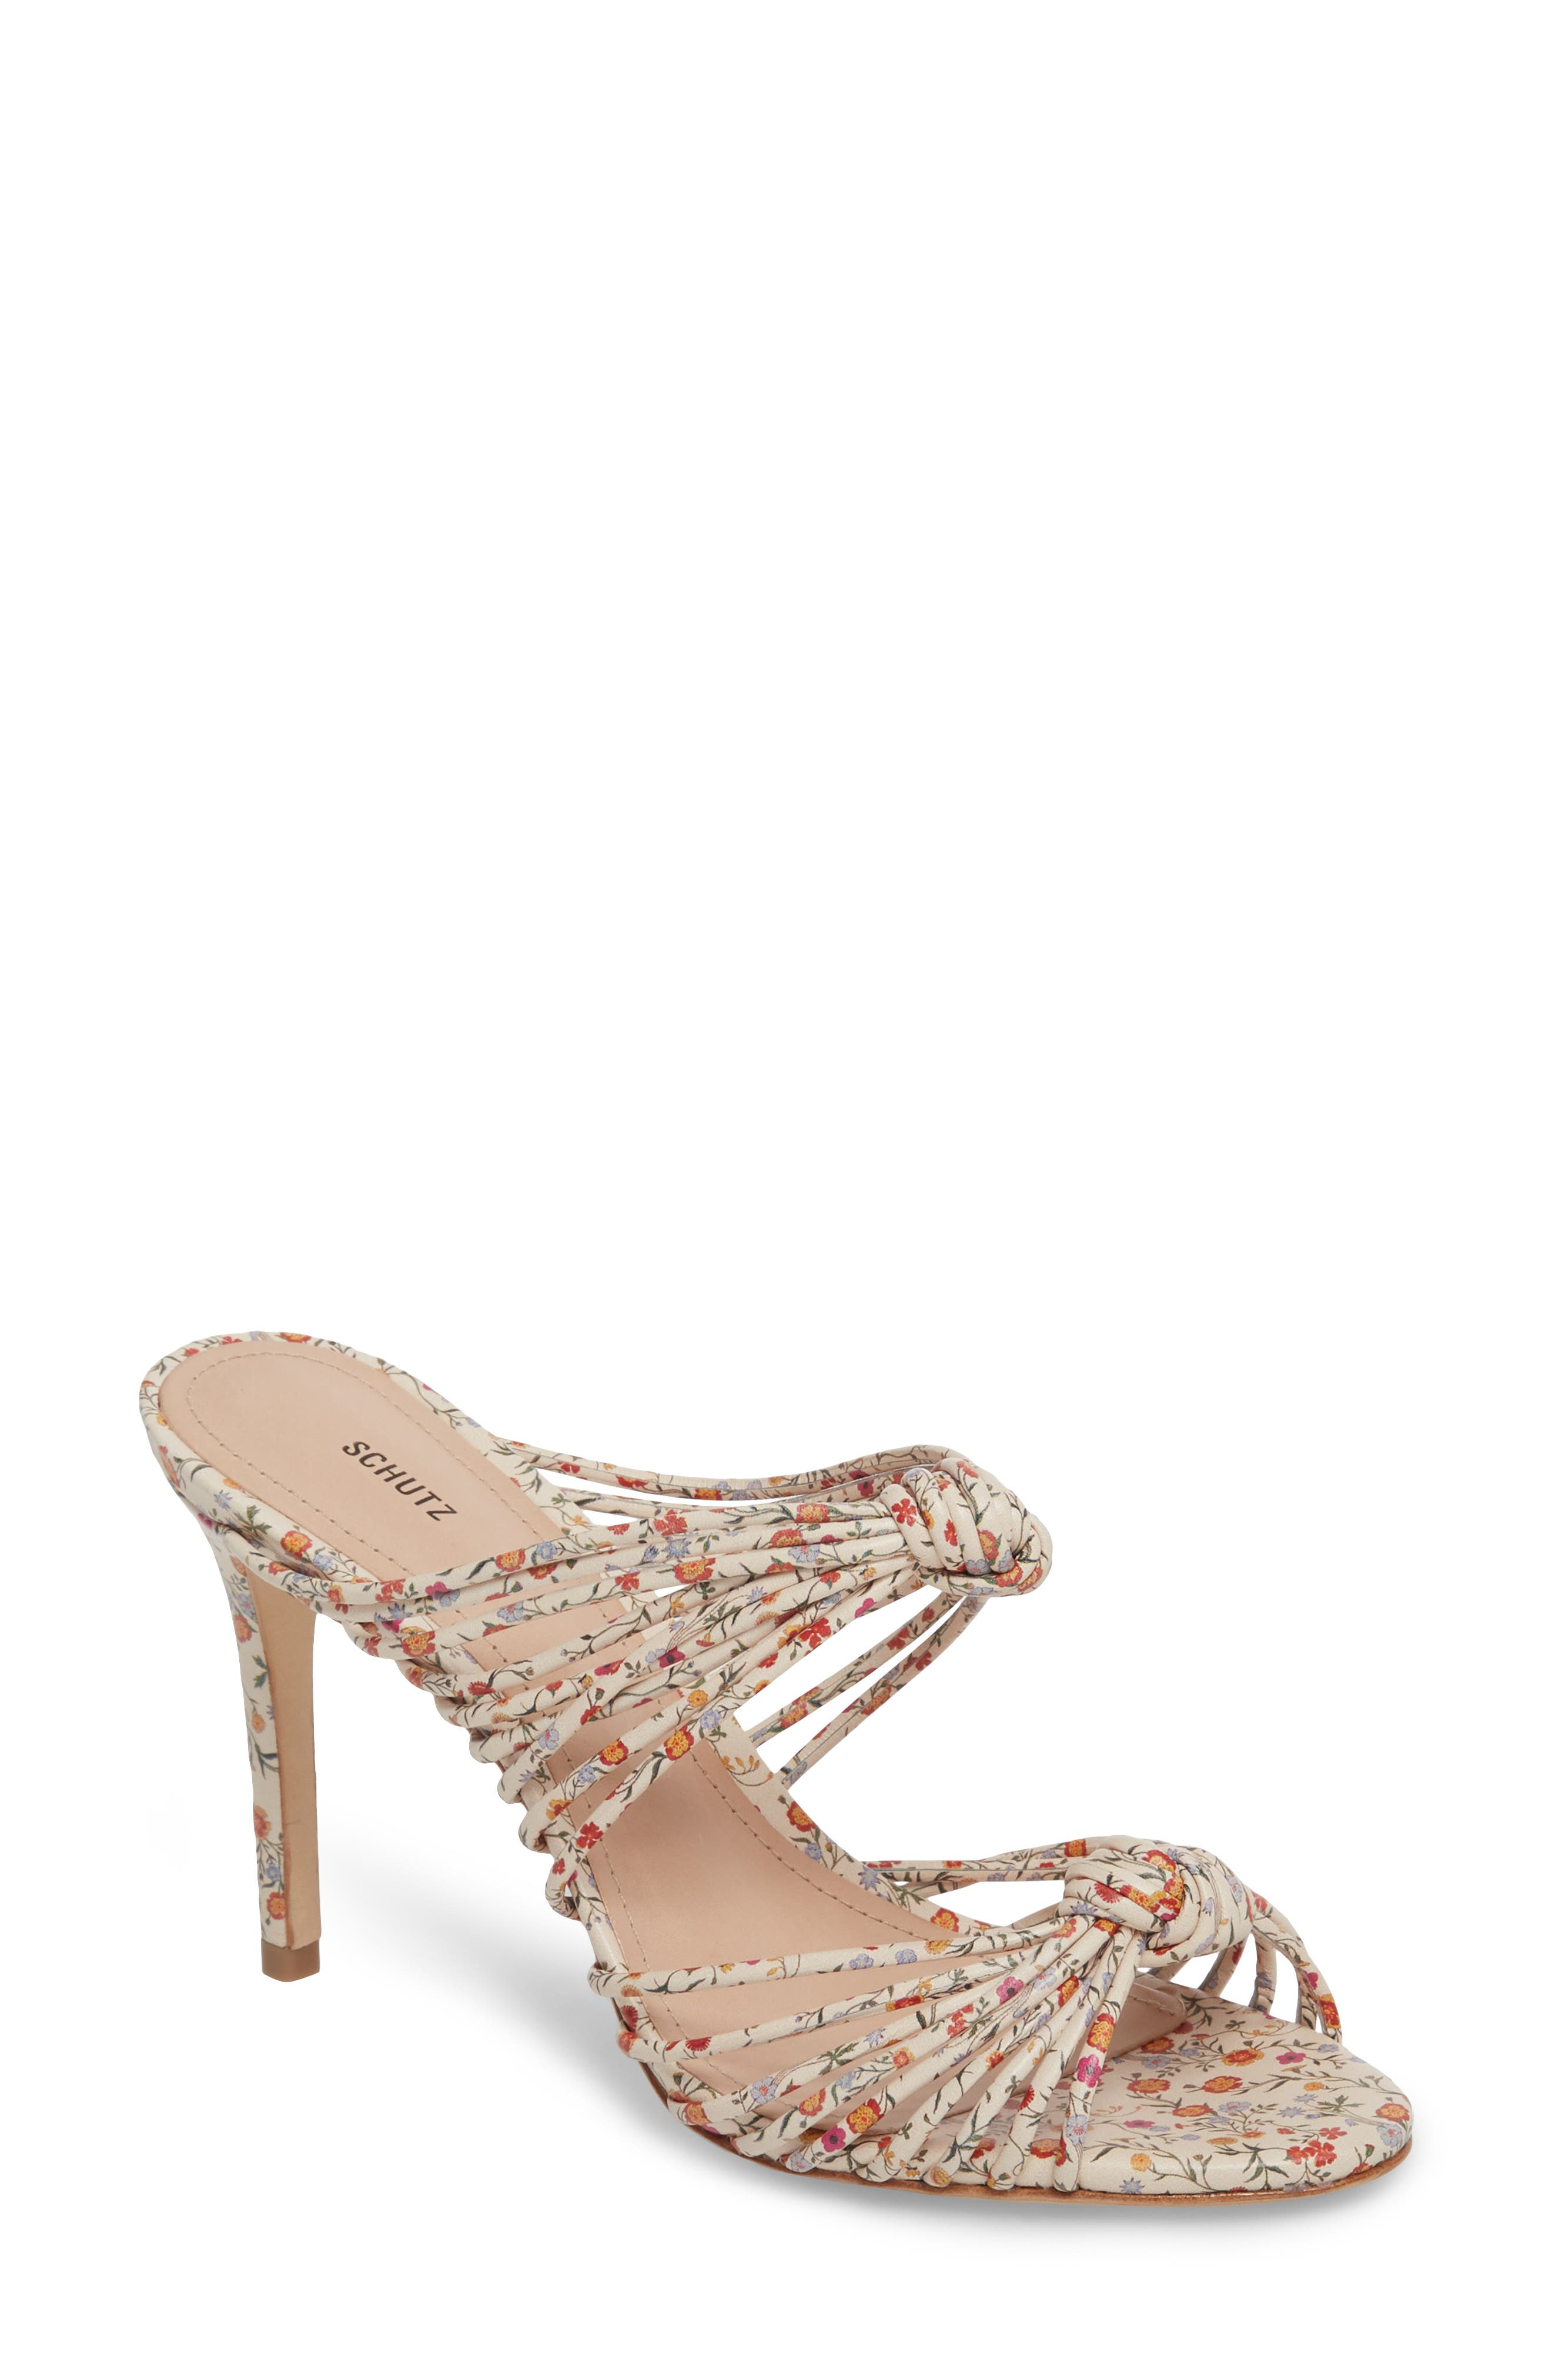 Chandra Sandal,                         Main,                         color, Natural Floral Leather